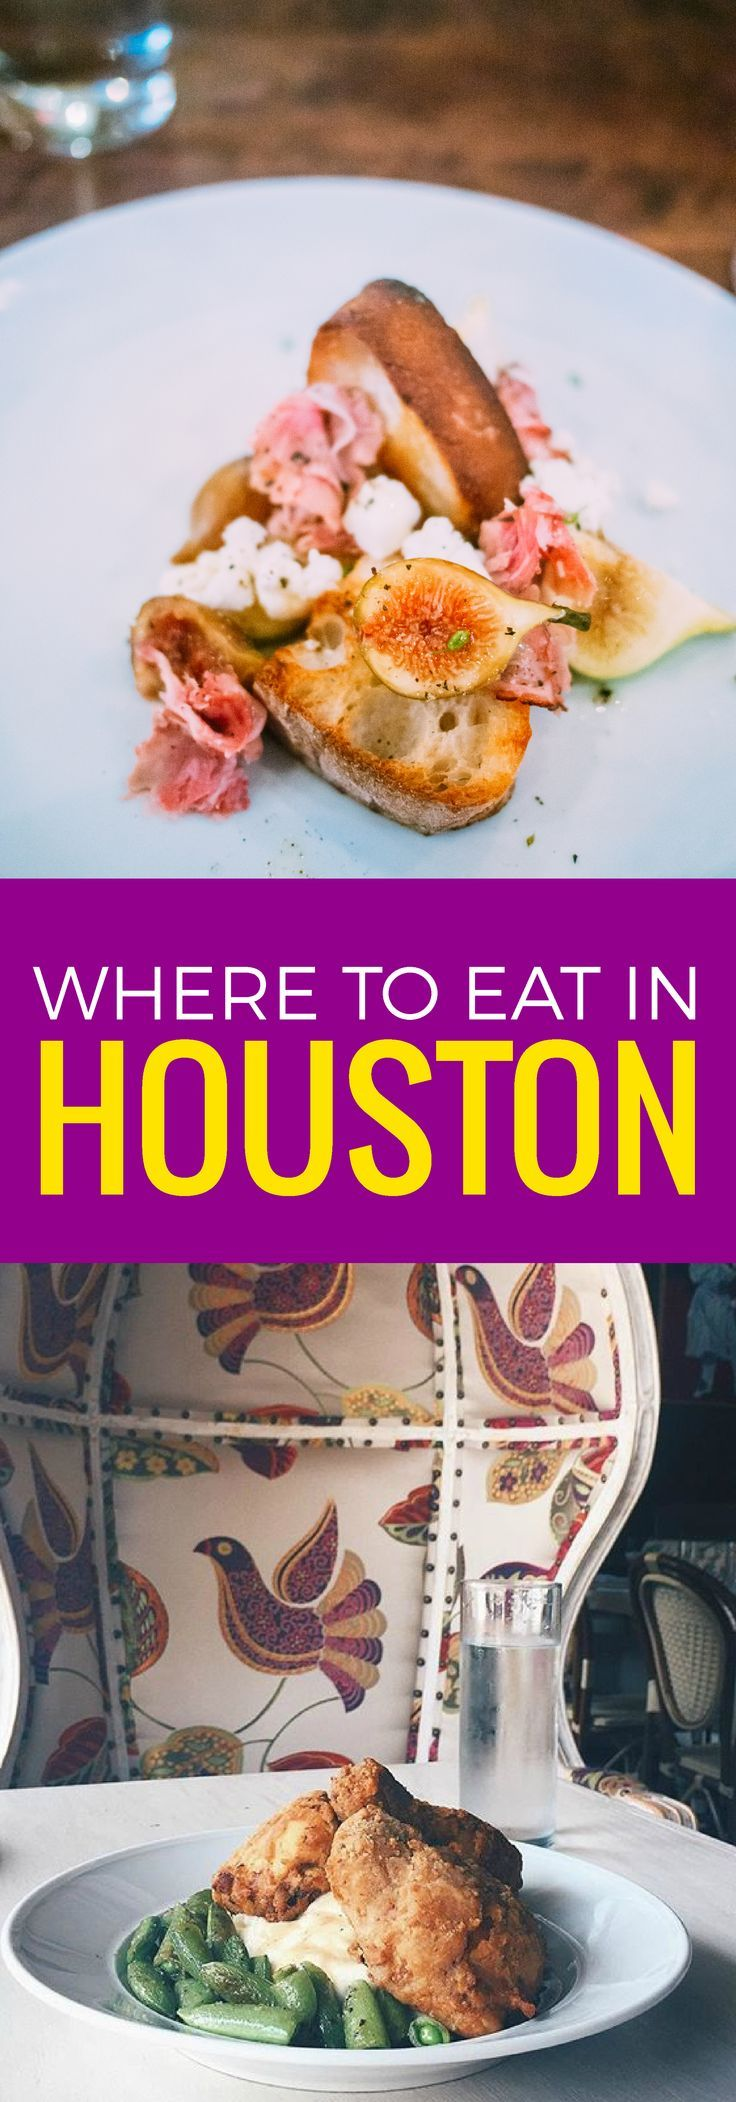 Houston is for food lovers, but you have to know where to go, check out the best restaurants in Houston.. ~ http://www.baconismagic.ca